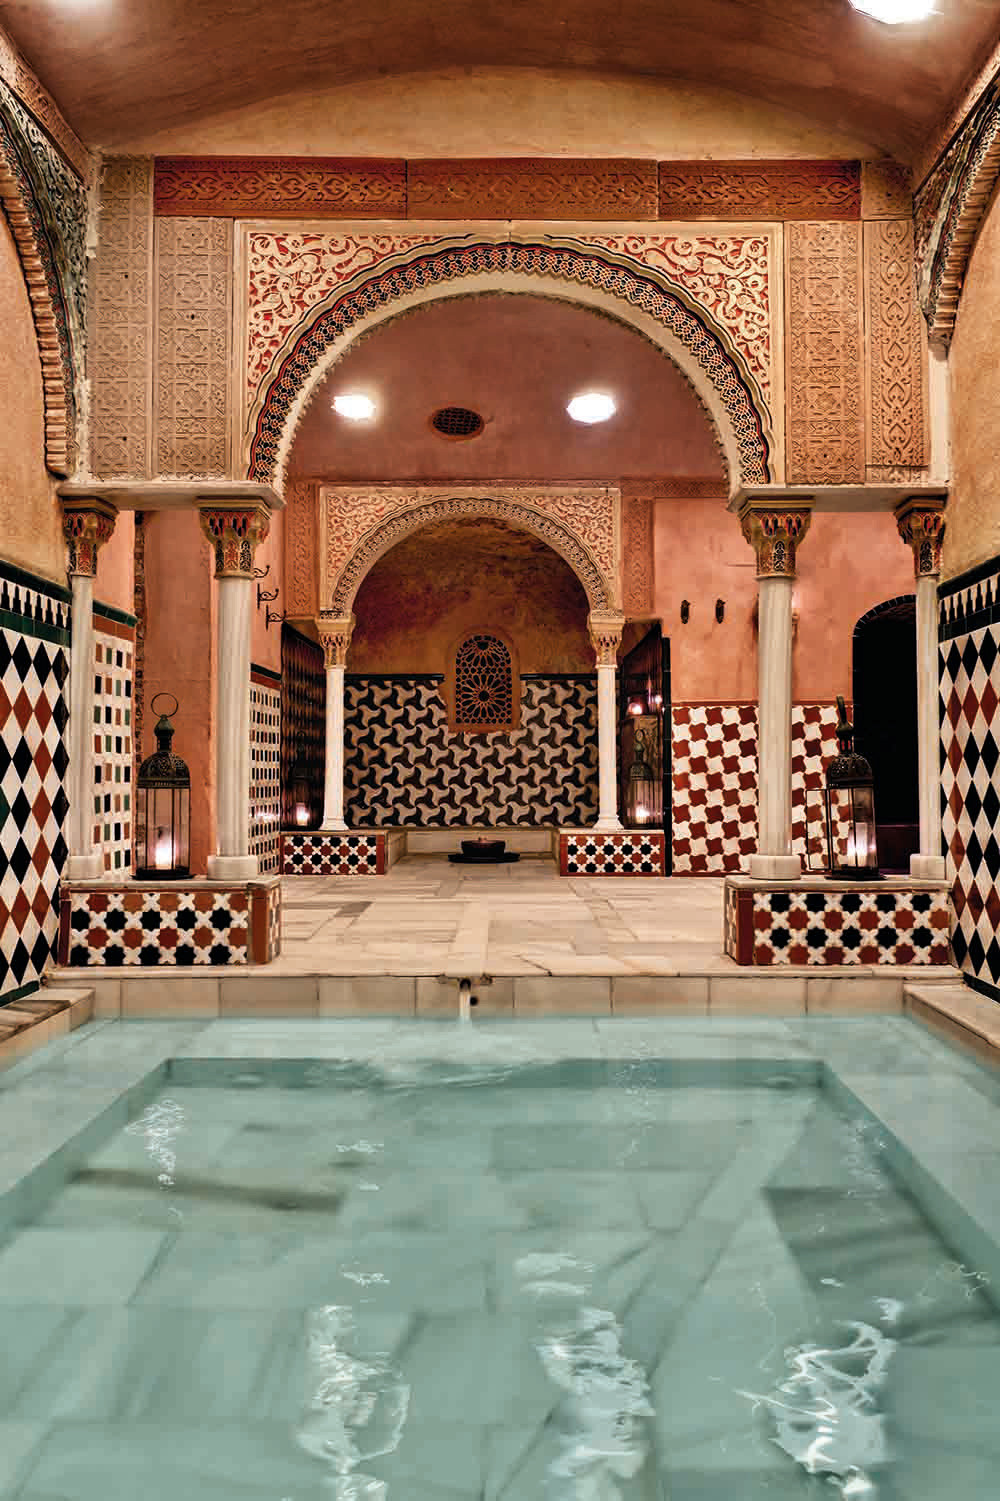 Arabic bathhouse day spa massage hammam al andalus granada Spain